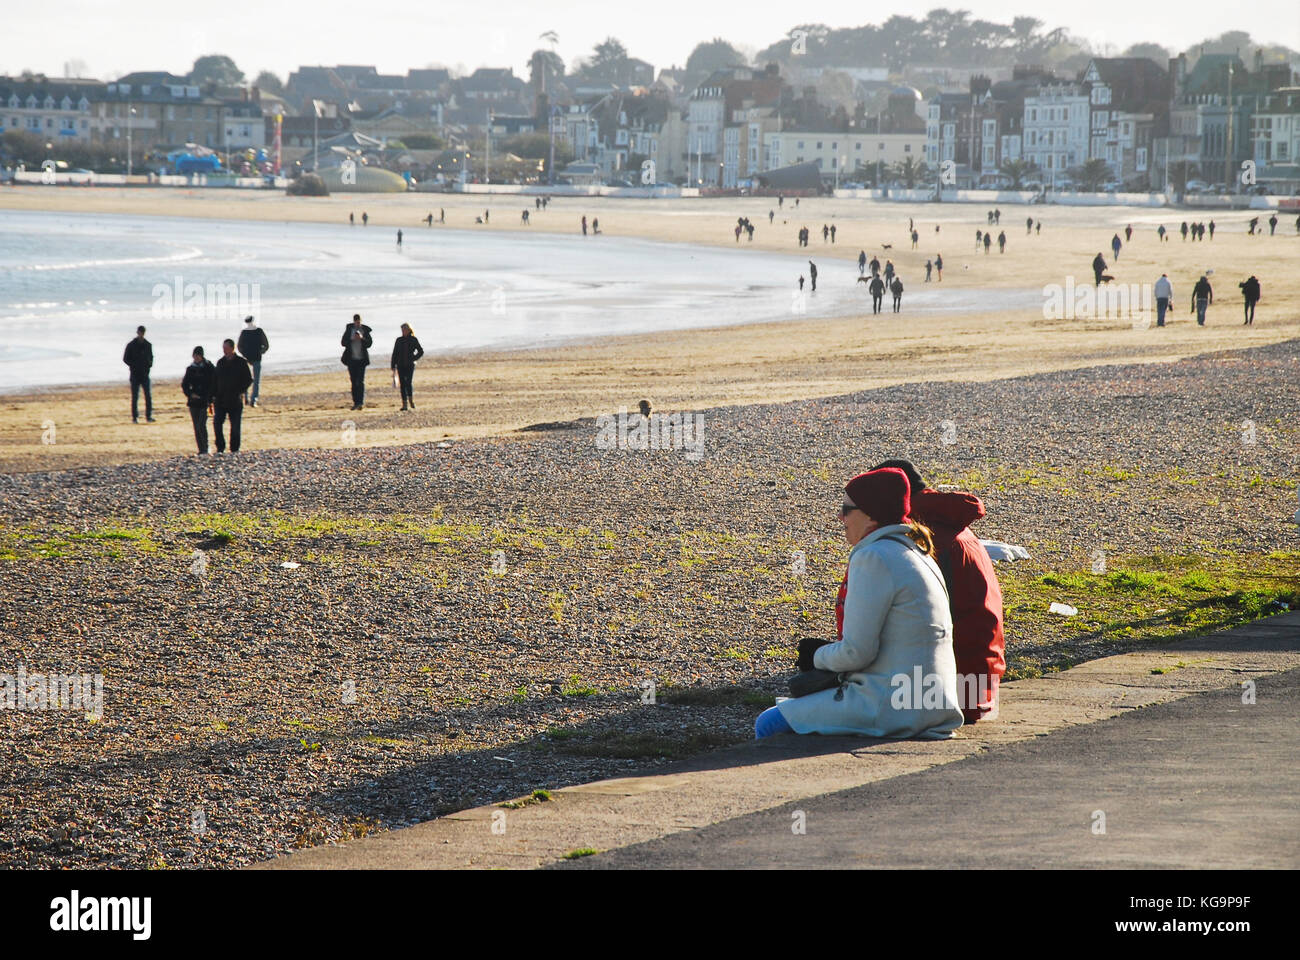 Weymouth, Dorset. 5th November 2017 - People wrap up warm and flock to Weymouth beach to enjoy the autumn sunshine. - Stock Image